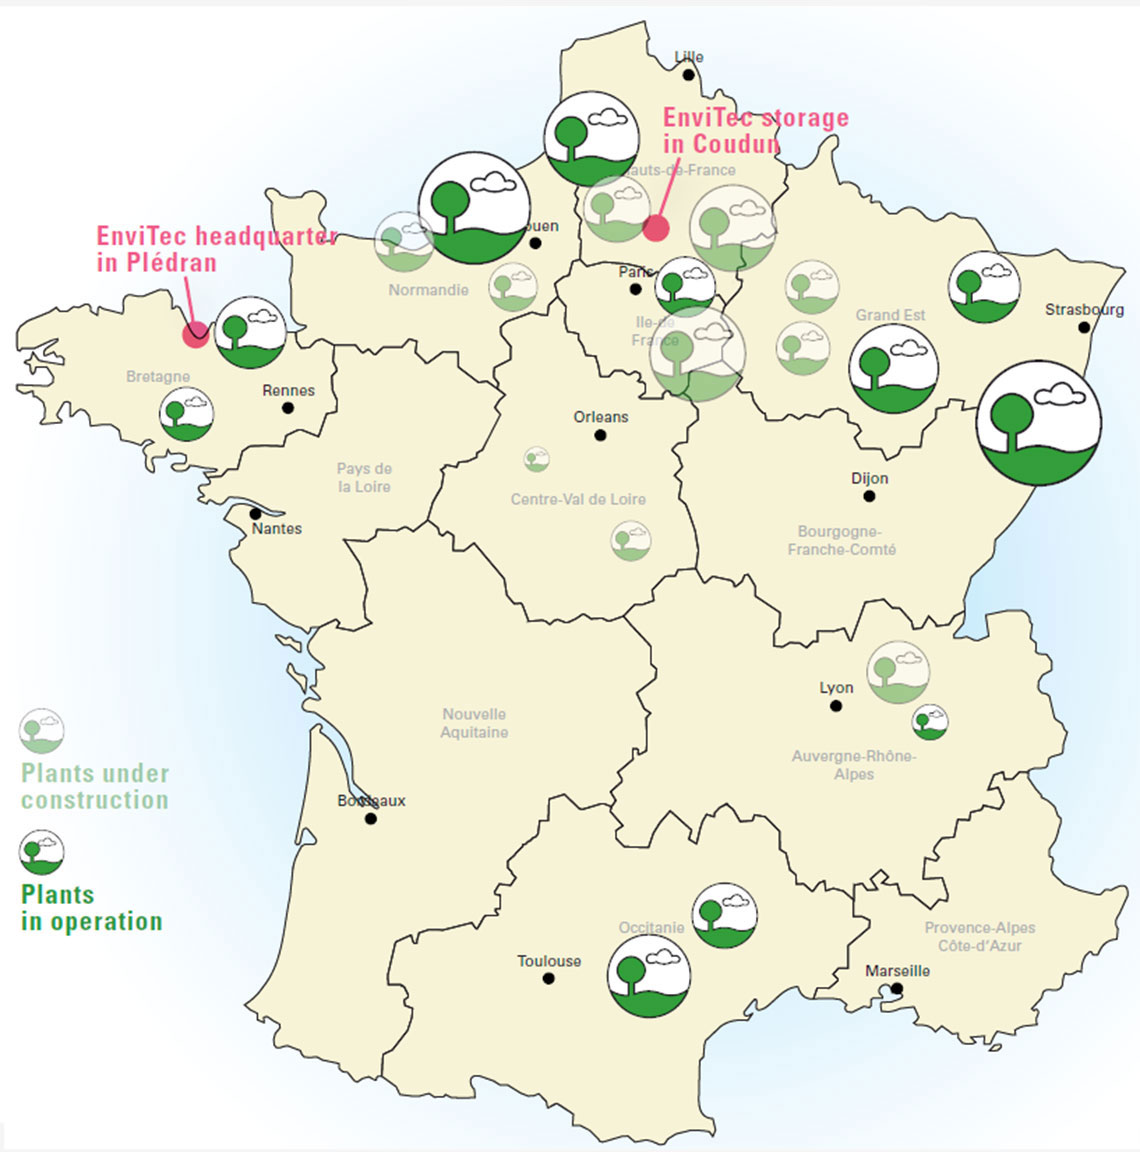 EnviTec projects in France